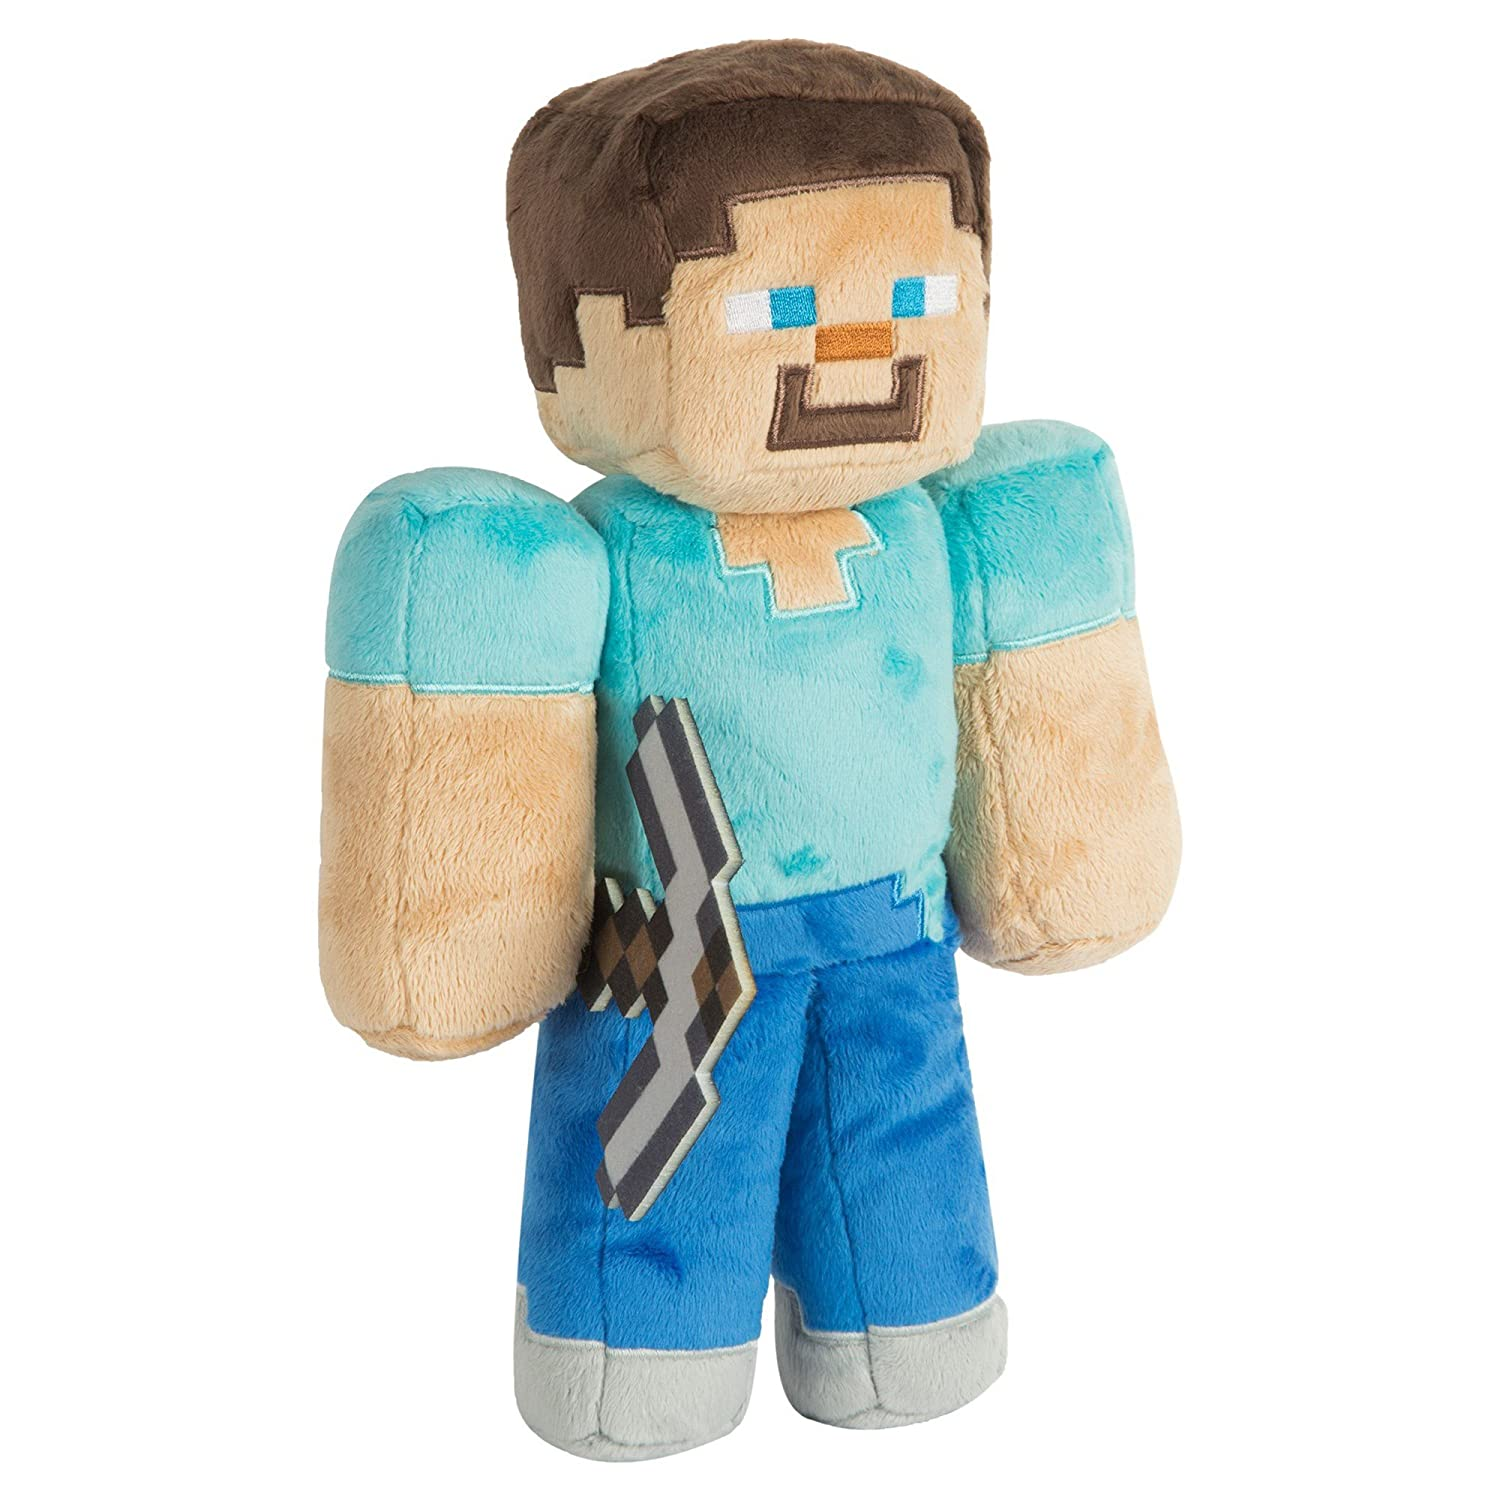 "Minecraft 12"" Steve Plush Stuffed Toy JINX 7179"